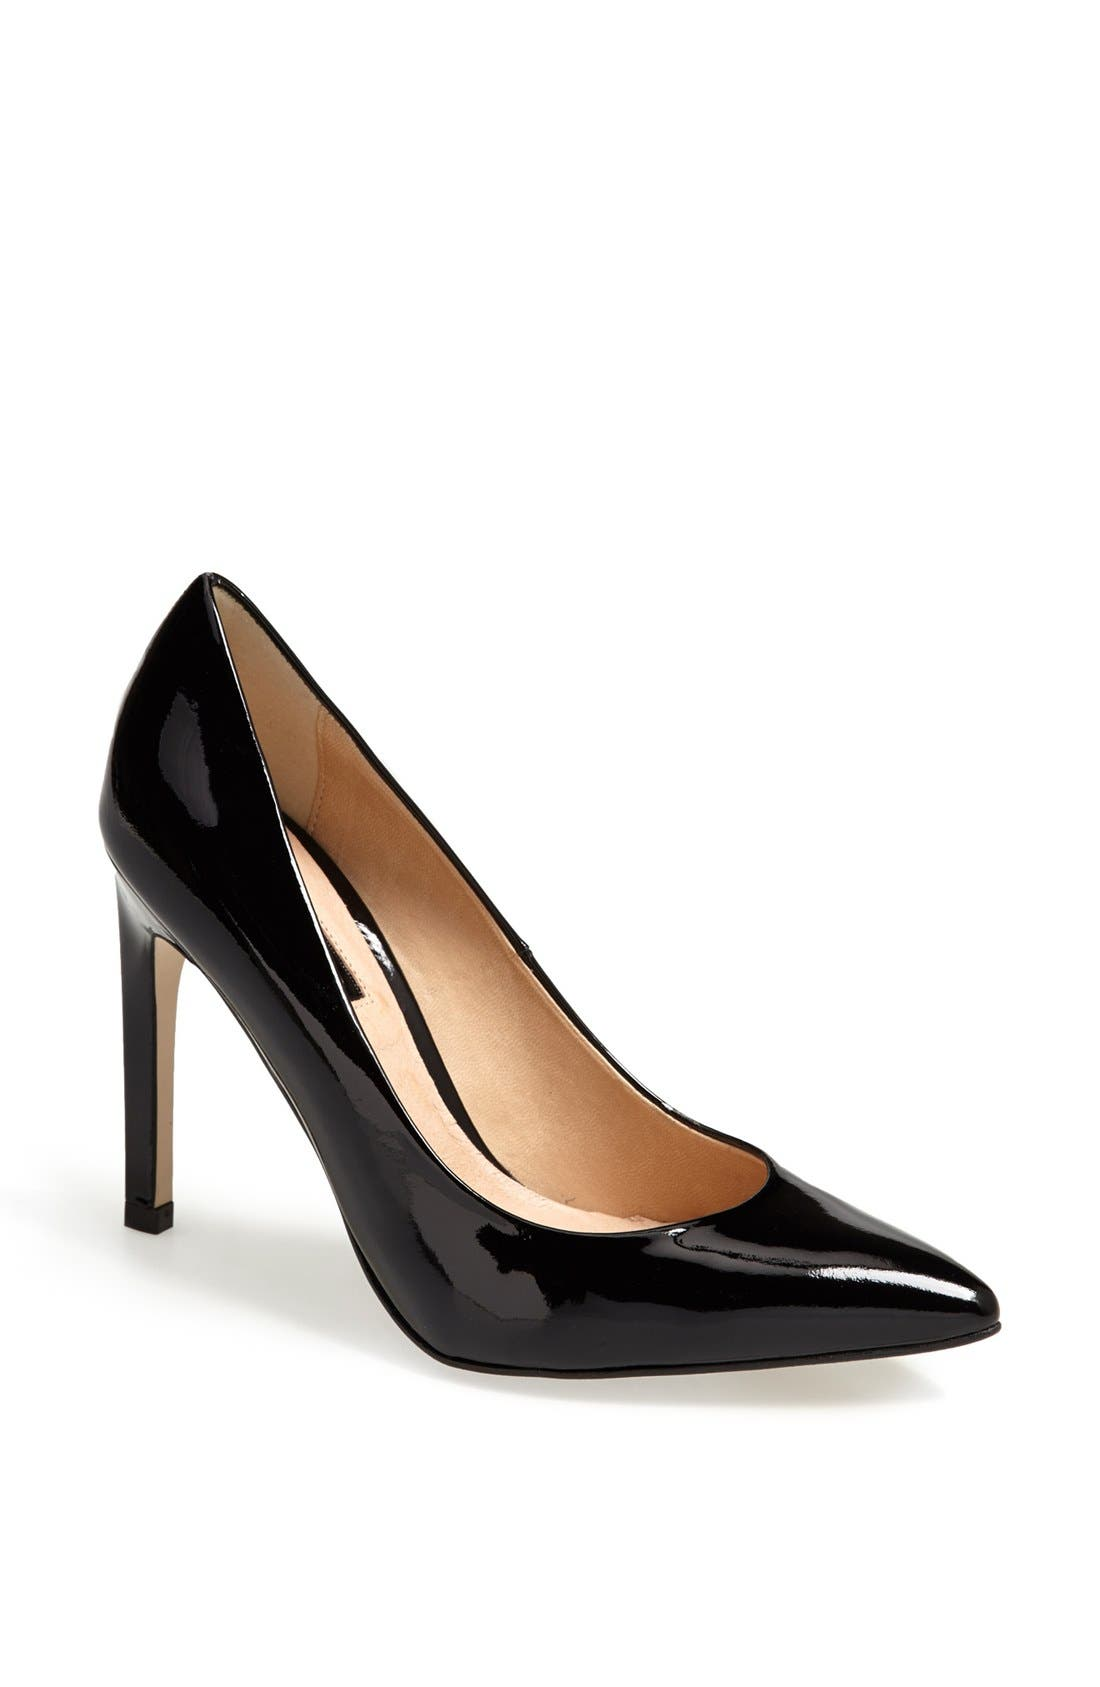 Alternate Image 1 Selected - Topshop 'Glimmer' Pointed Toe Pump